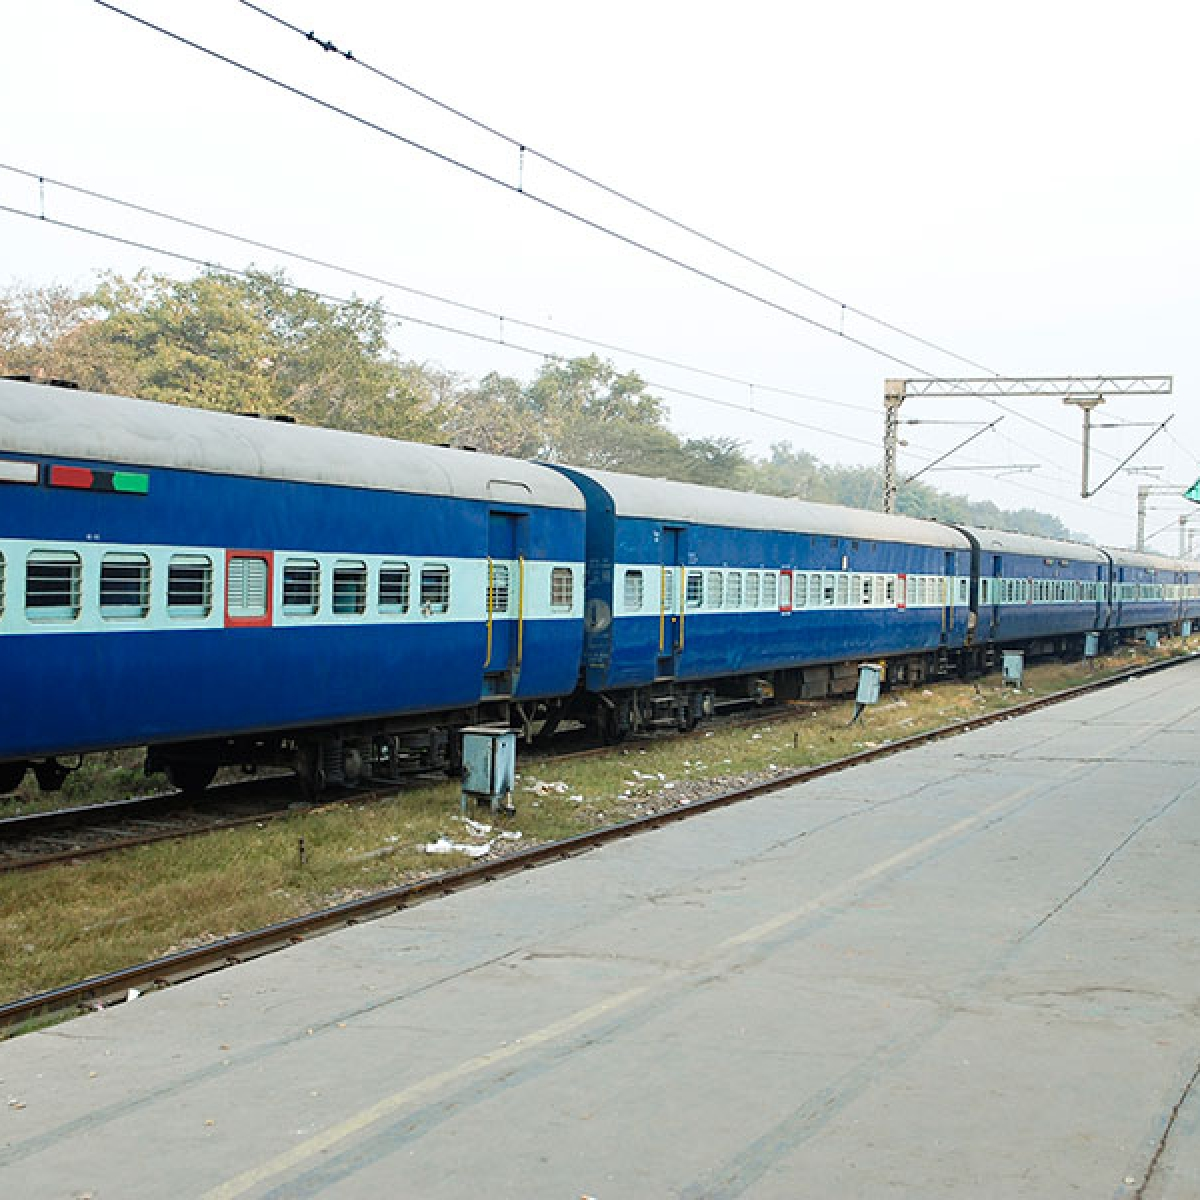 After Maharashtra prohibits inter-district travel, Railways to provide full refund for cancelled tickets for trains scheduled to run from June 1